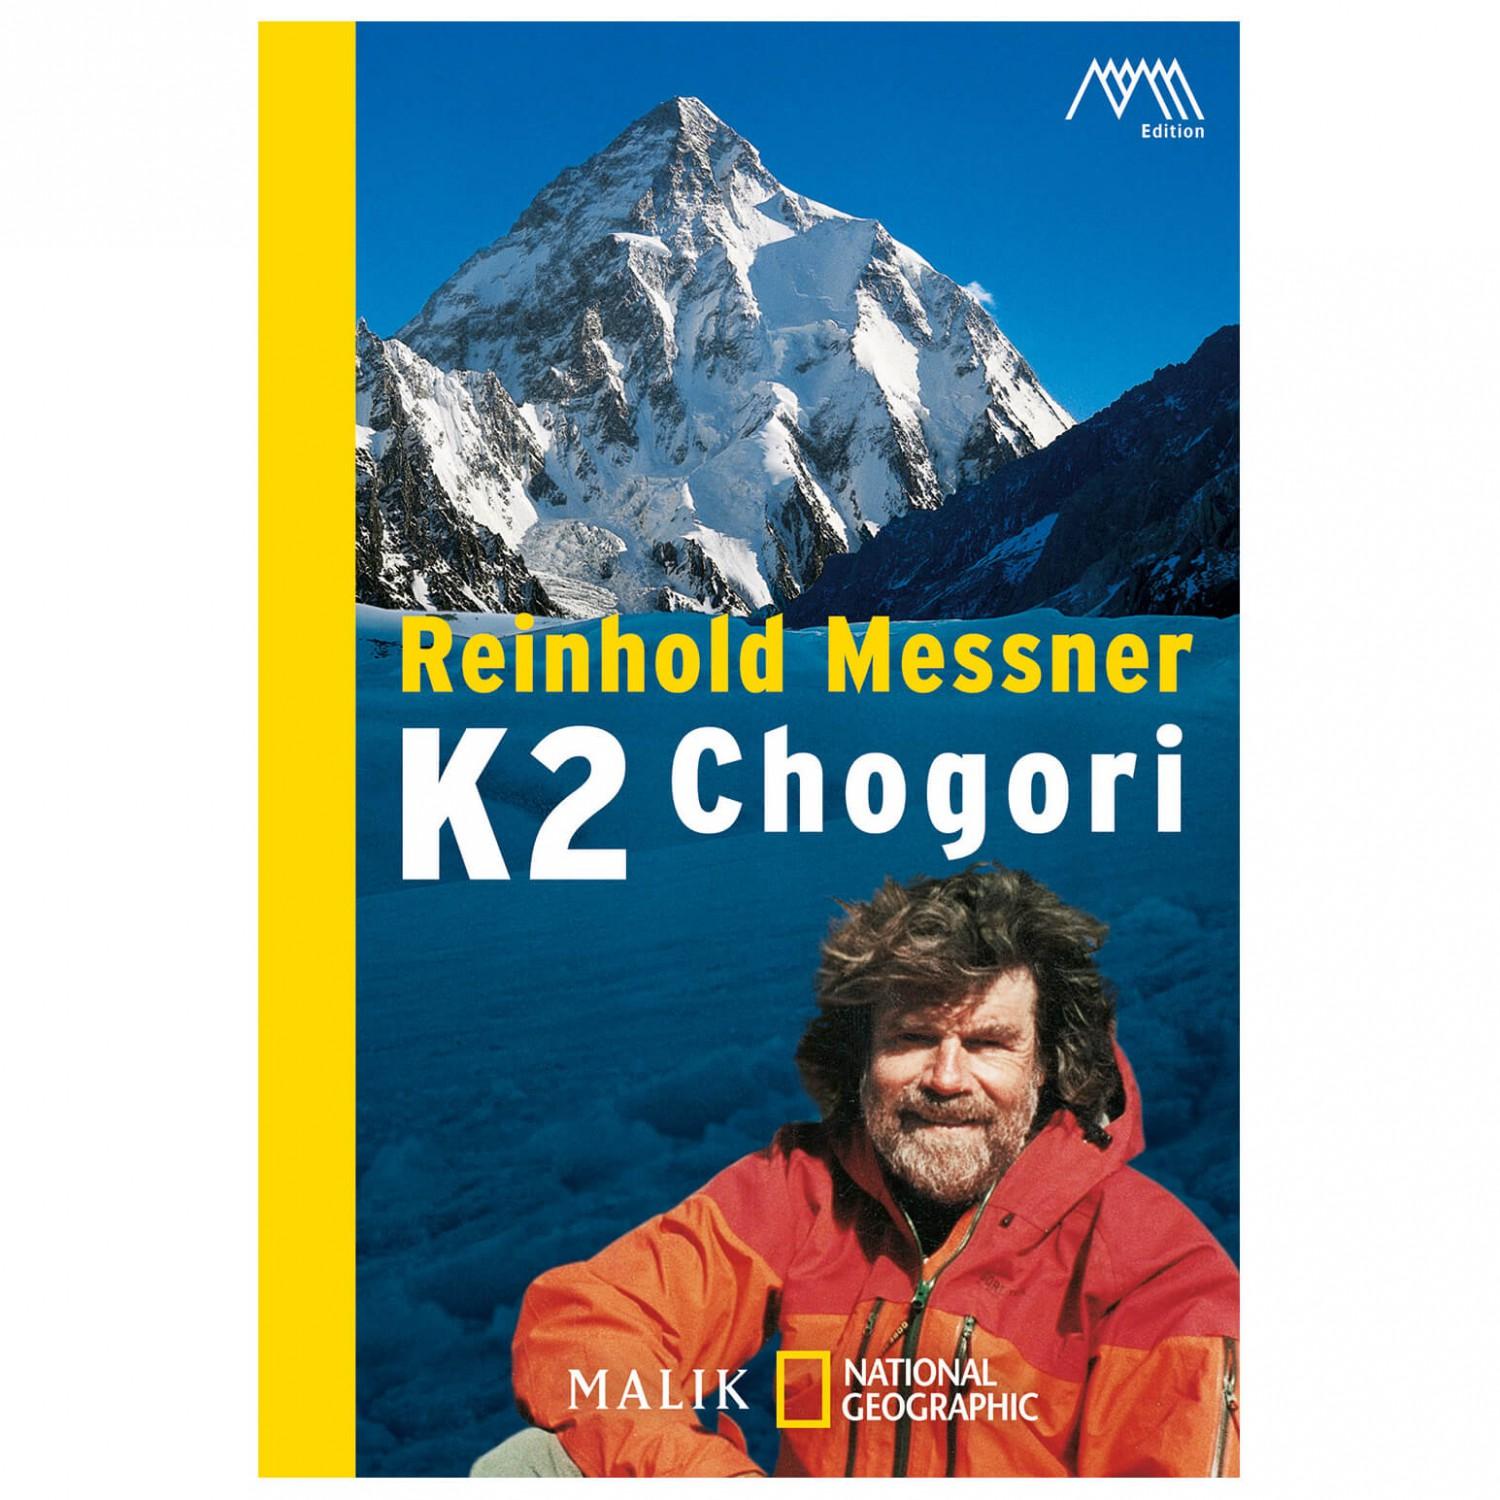 Reinhold Messner In National Geographic